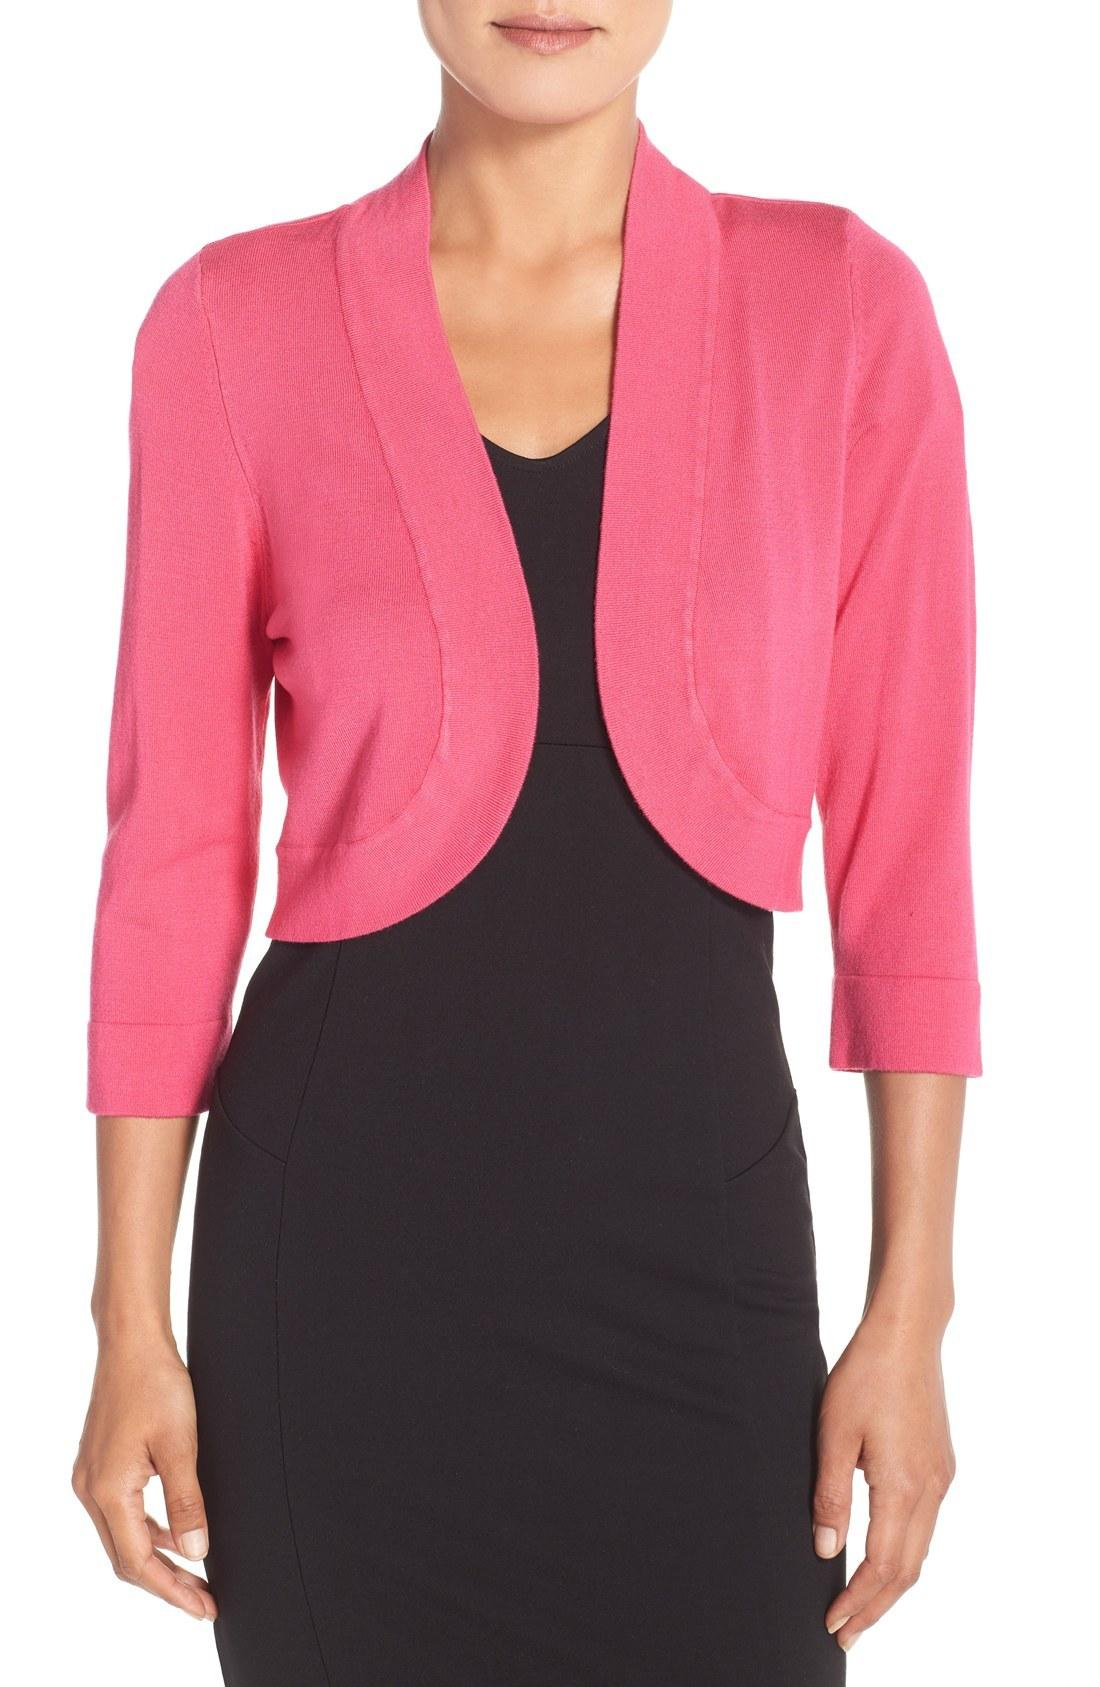 983db62c7fe A classic bolero cardigan with three-quarter sleeves is the perfect  layering piece for cool summer evenings. Style Name  Eliza J Open Front  Bolero Cardigan.